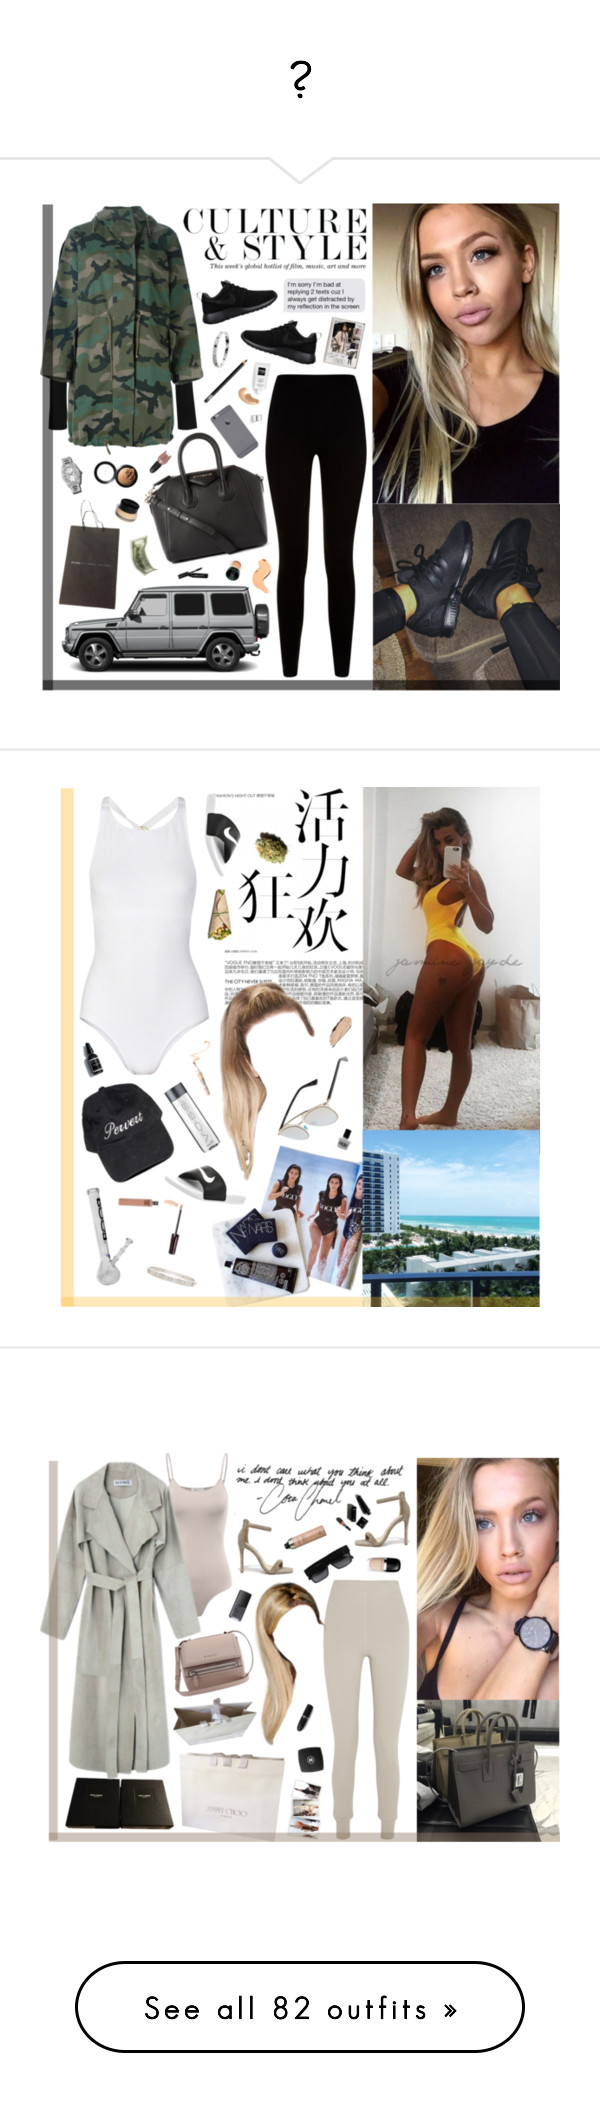 """"""""""" by teeamdrizzy ❤ liked on Polyvore featuring Donna Karan, Valentino, Givenchy, NIKE, Rolex, Bobbi Brown Cosmetics, CC, Garance Doré, Sephora Collection and Oscar de la Renta"""